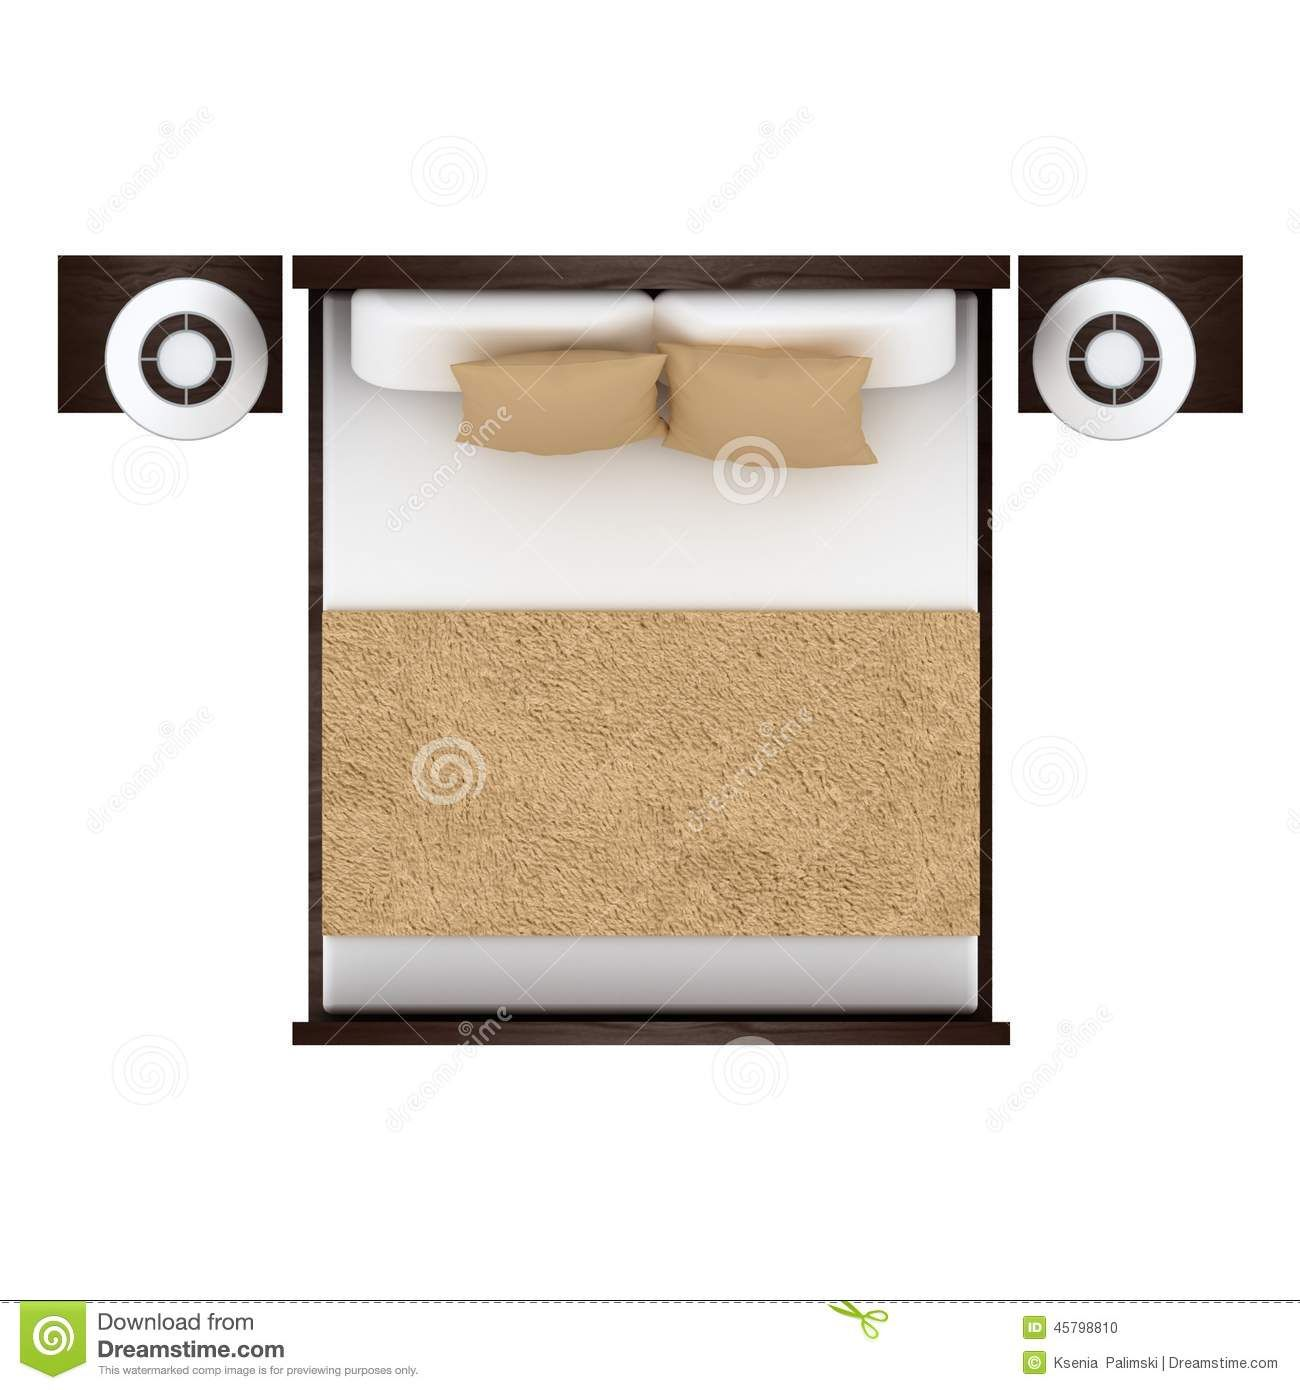 white bed top view. Bed-top-view-isolated-white-background-45798810.jpg (1300×1390) White Bed Top View ,